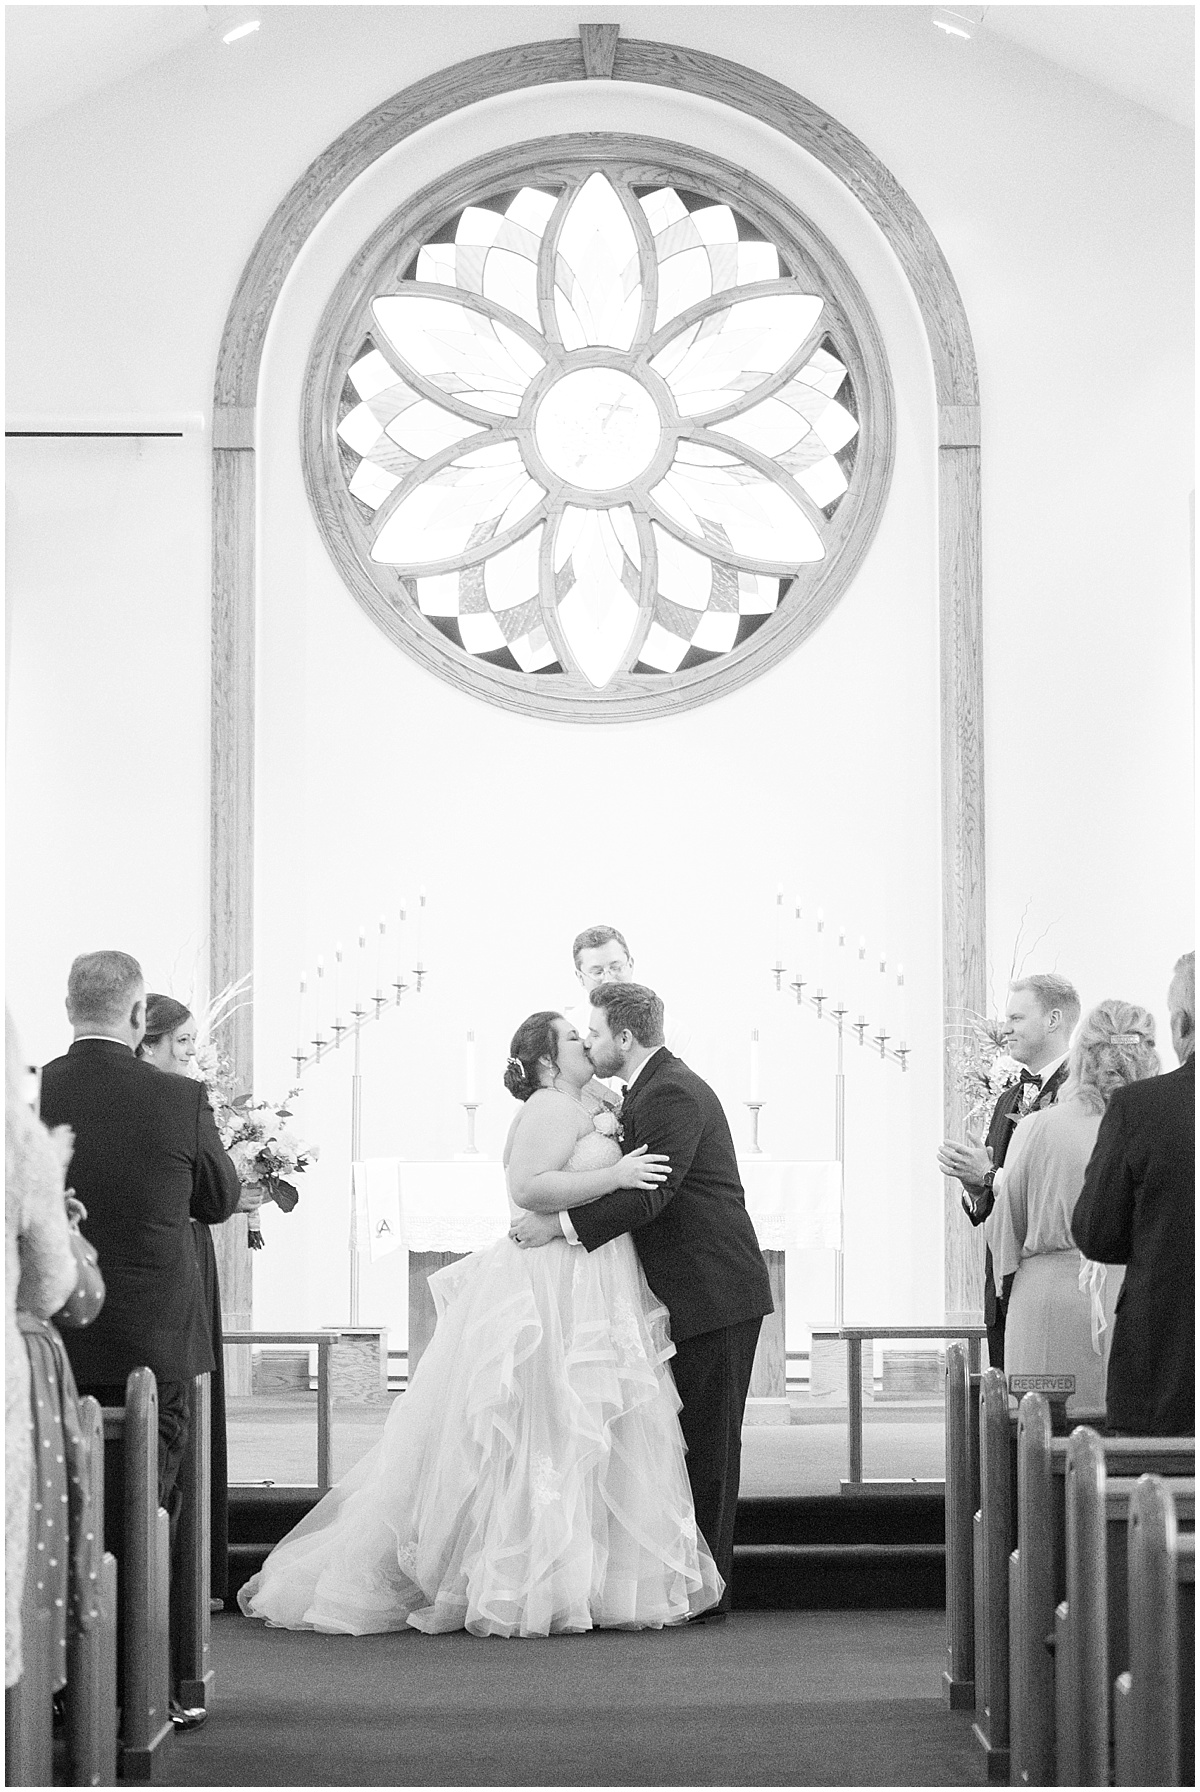 Chris and Ashley Peterson - Wedding at the Jasper County Fairgrounds in Rensselaer, Indiana75.jpg